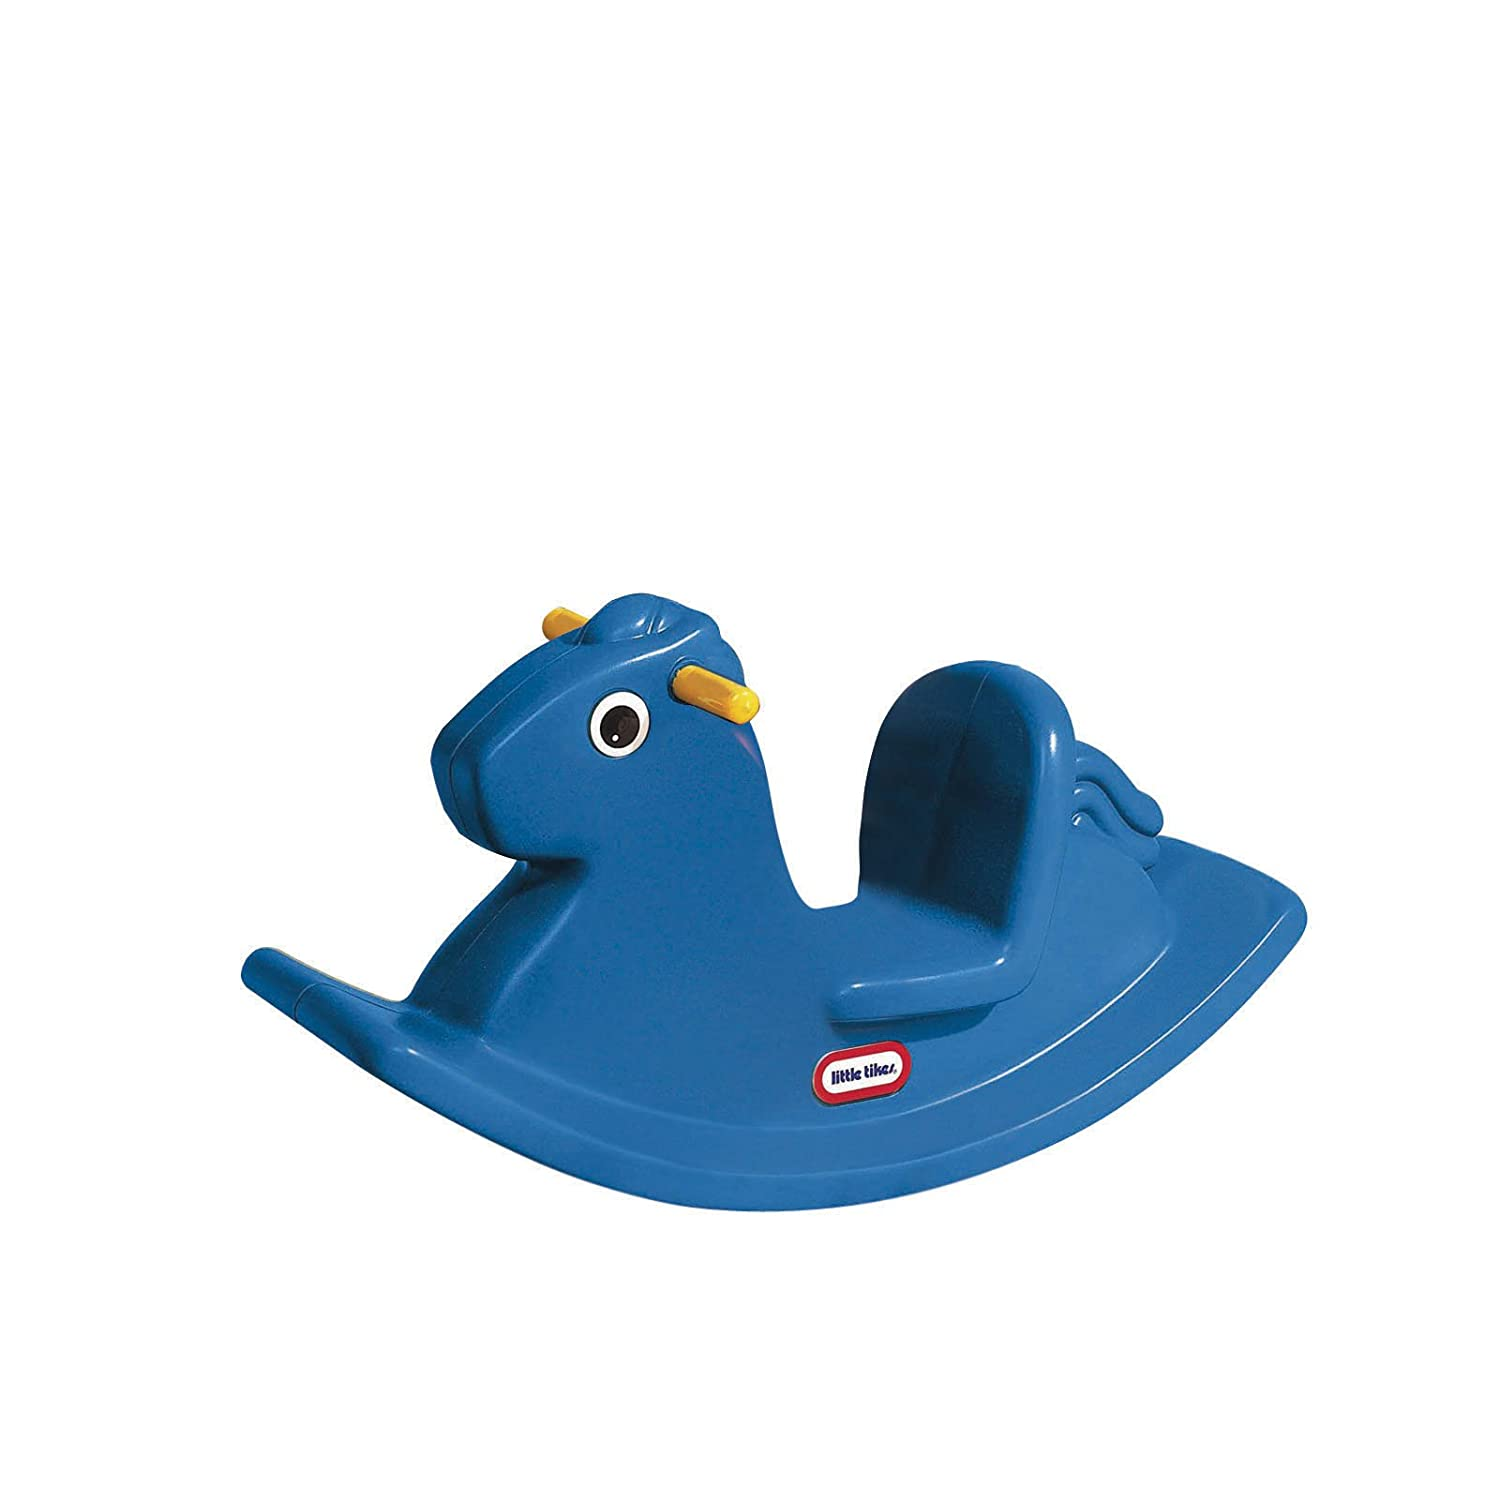 Little Tikes ® 042799 Cheval à bascule - Bleu 427900072